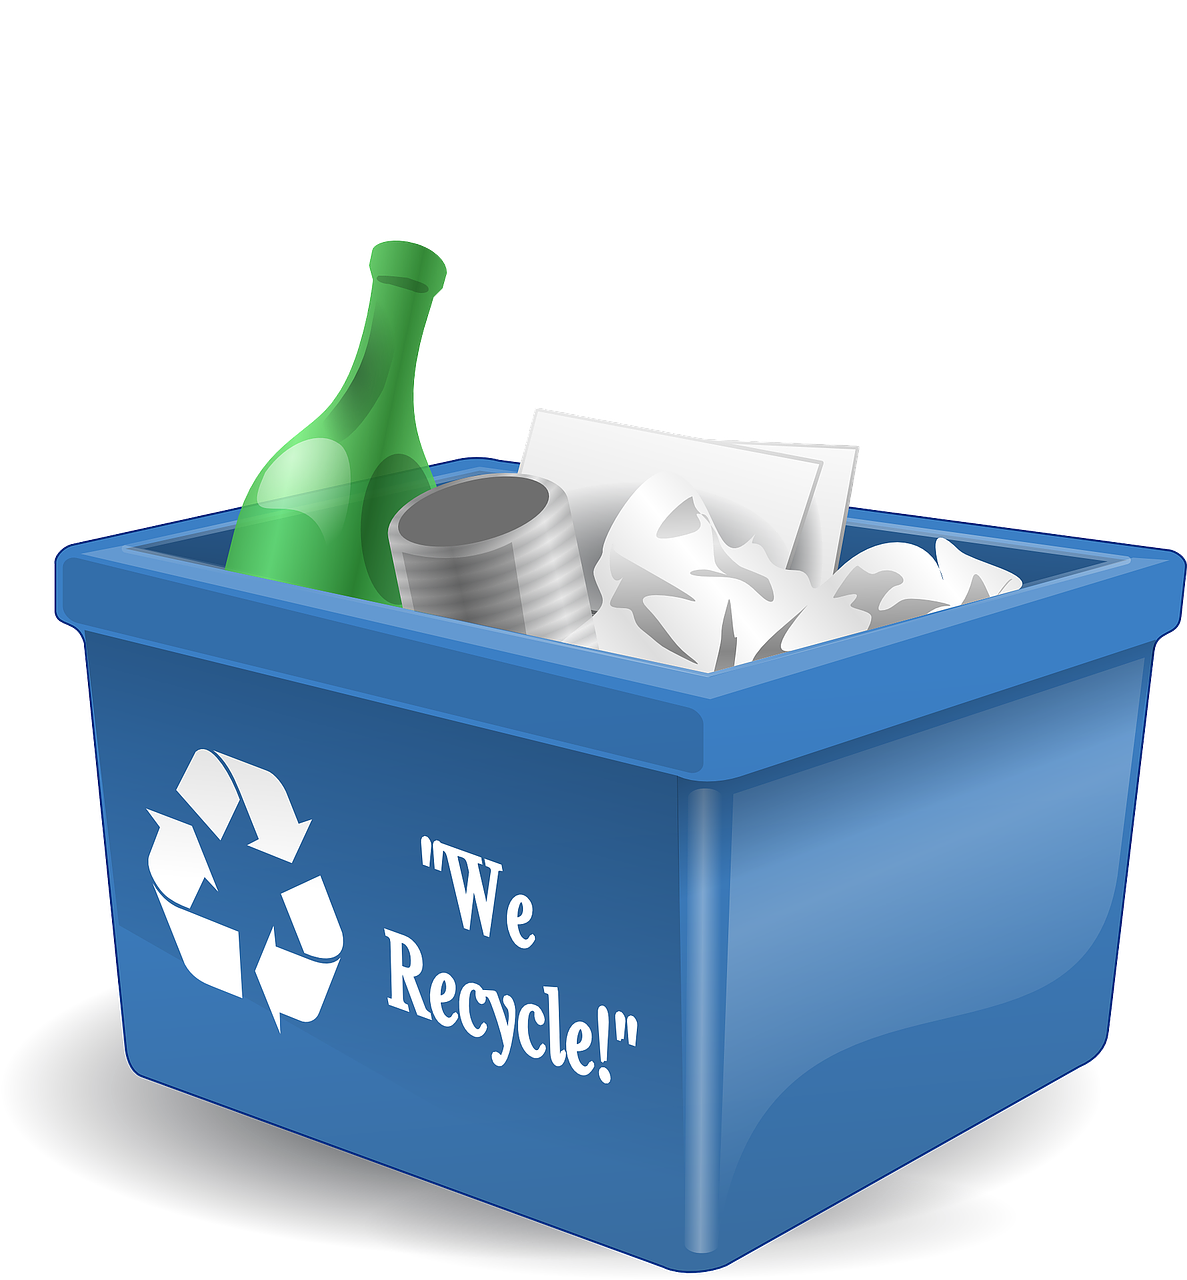 magazine clipart recycling